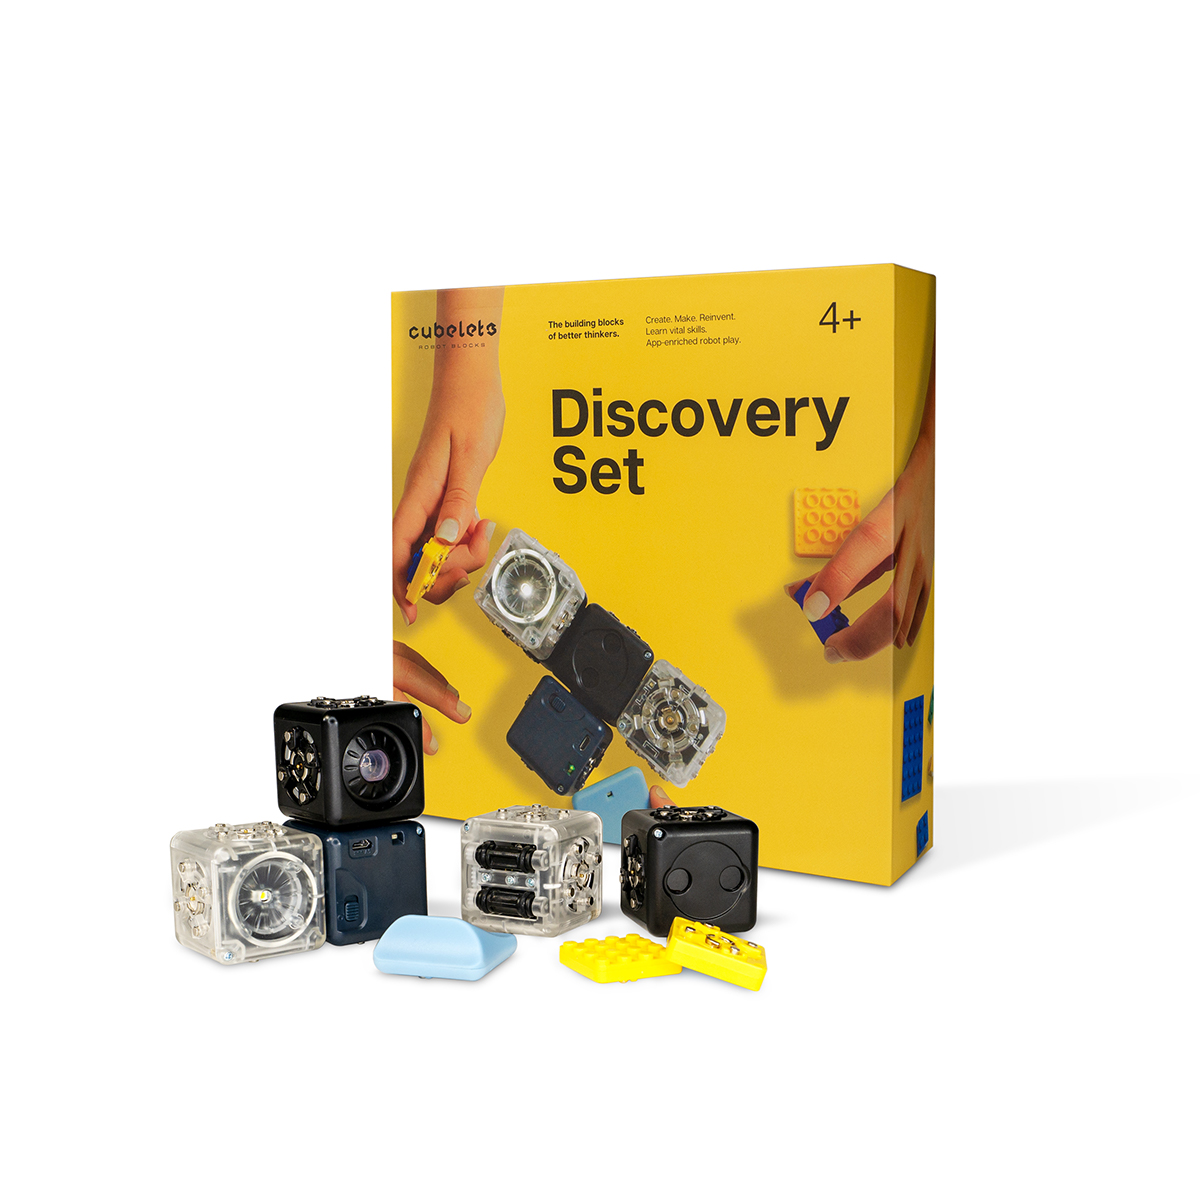 Modular Robotics Discovery Set with Box